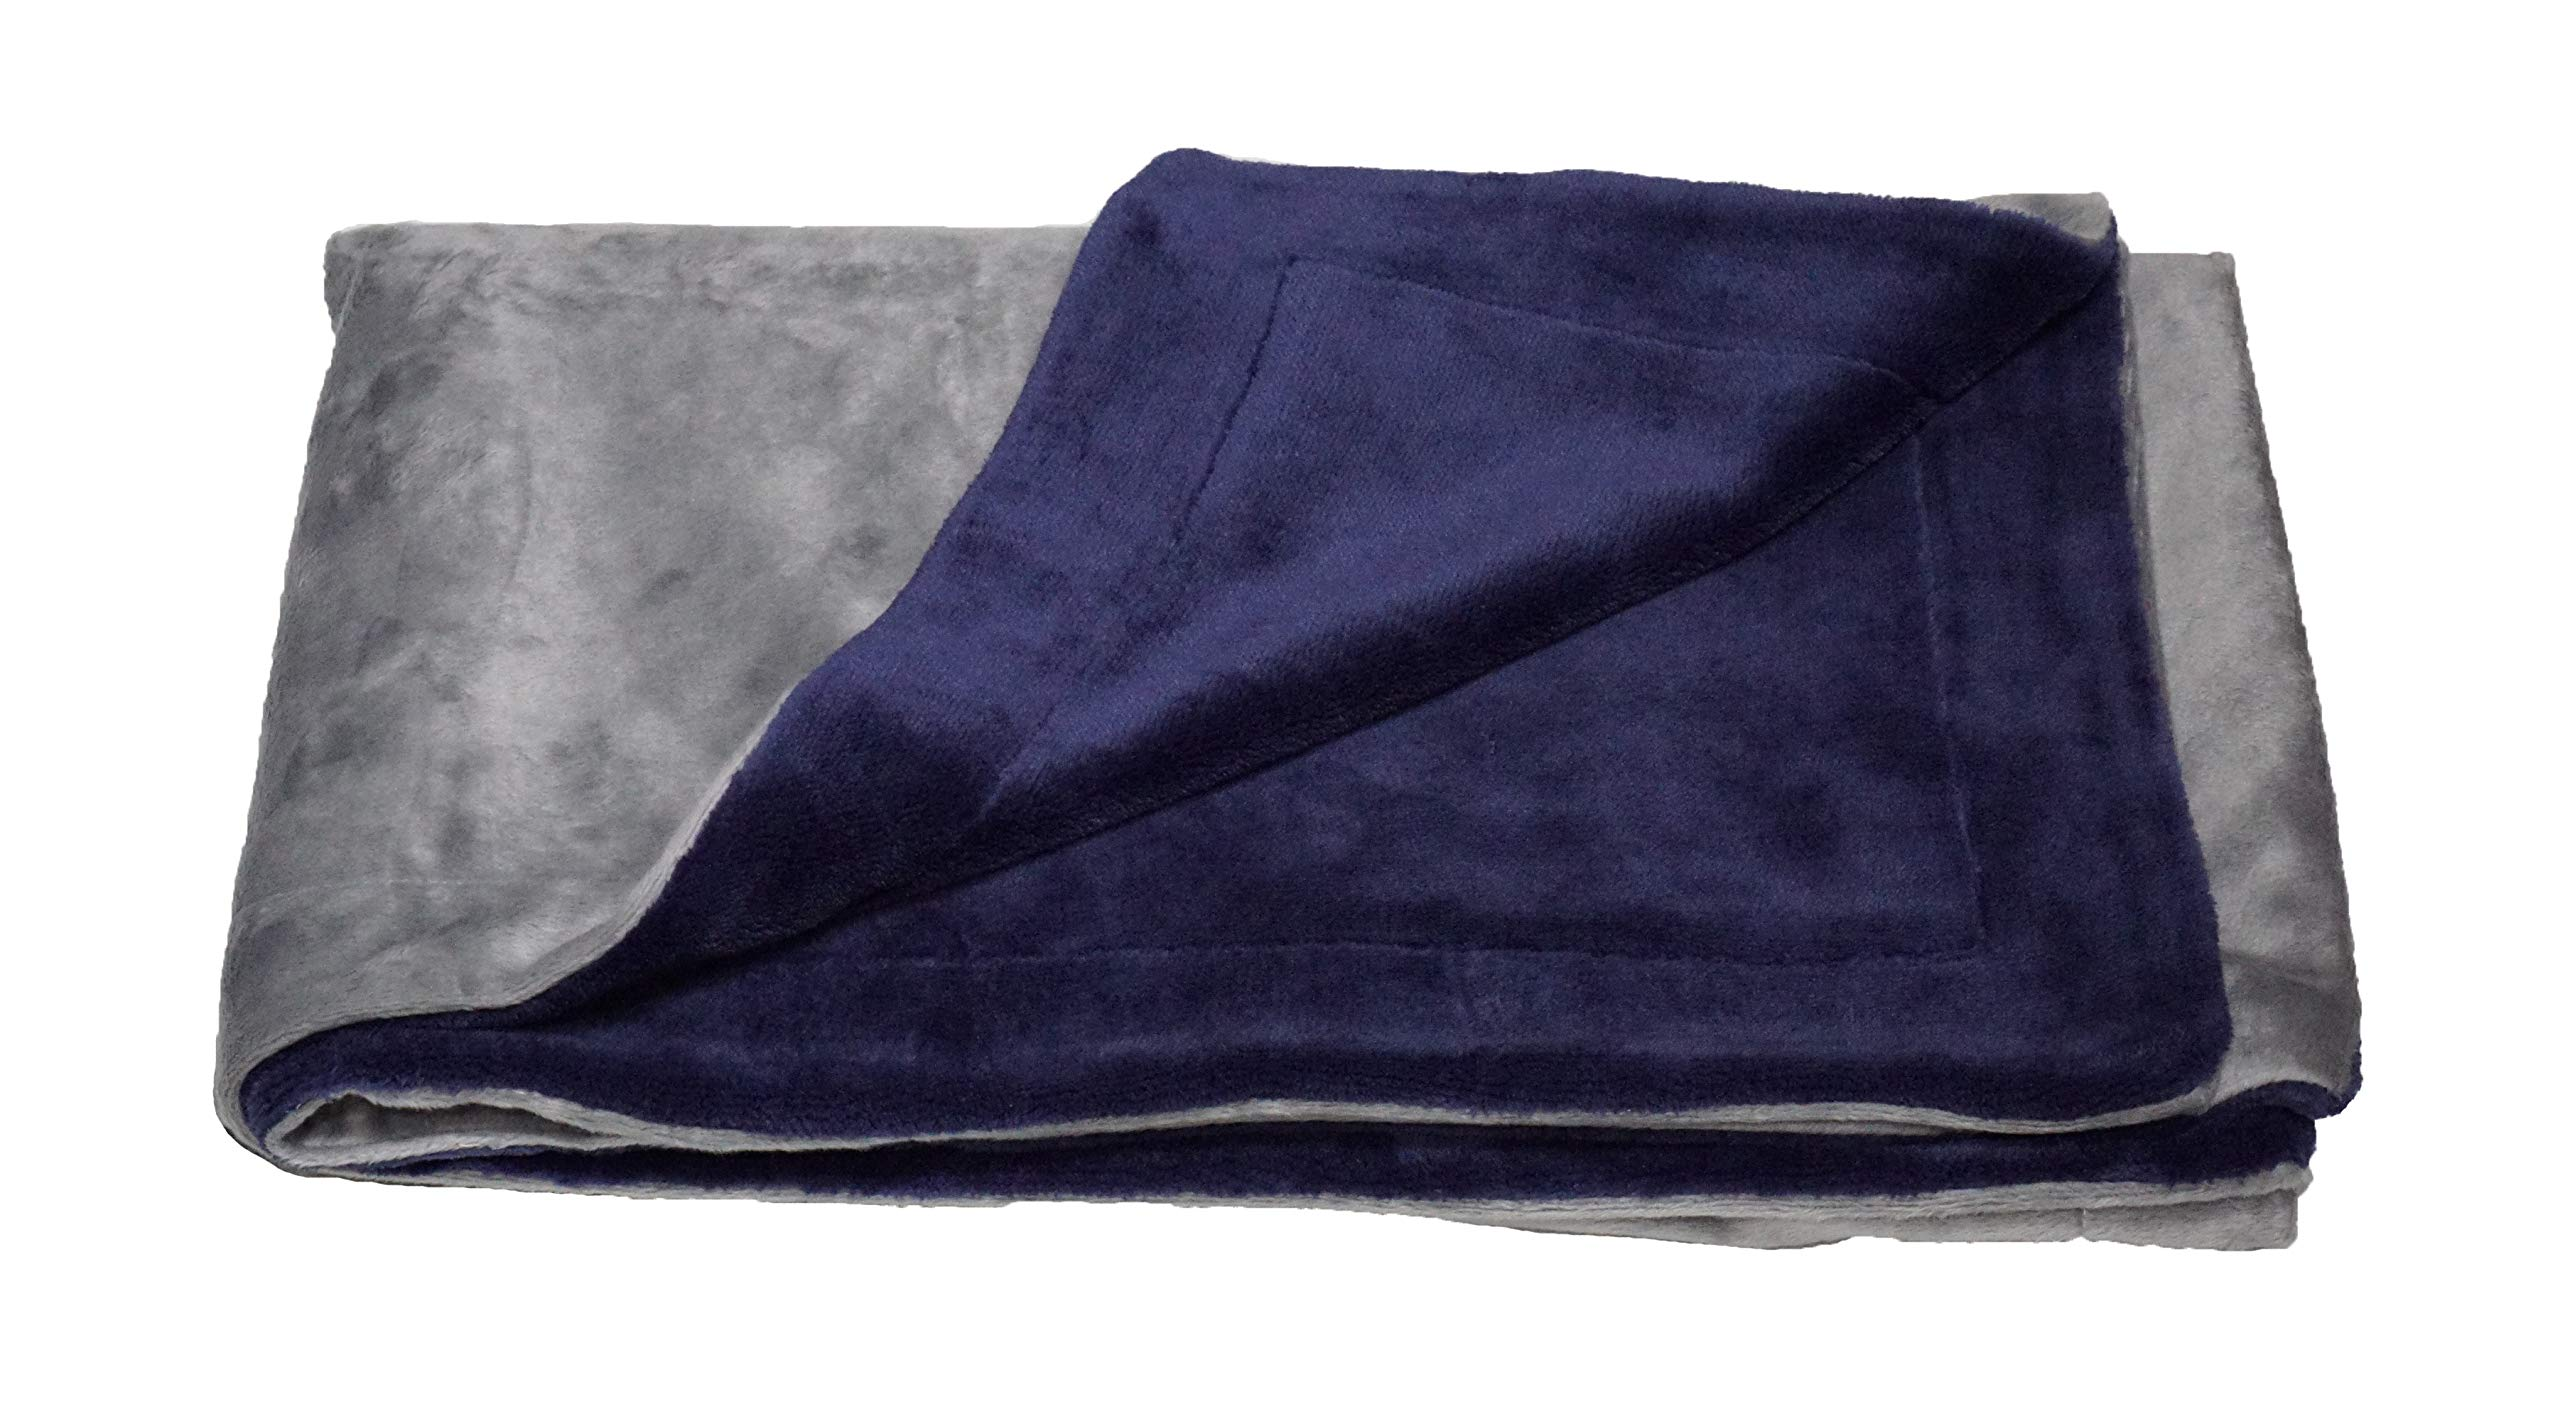 PetBed4Less Premium 100% Waterproof Silky Soft Throw Dog Blanket Cat Blanket with Reversible Duo Layers